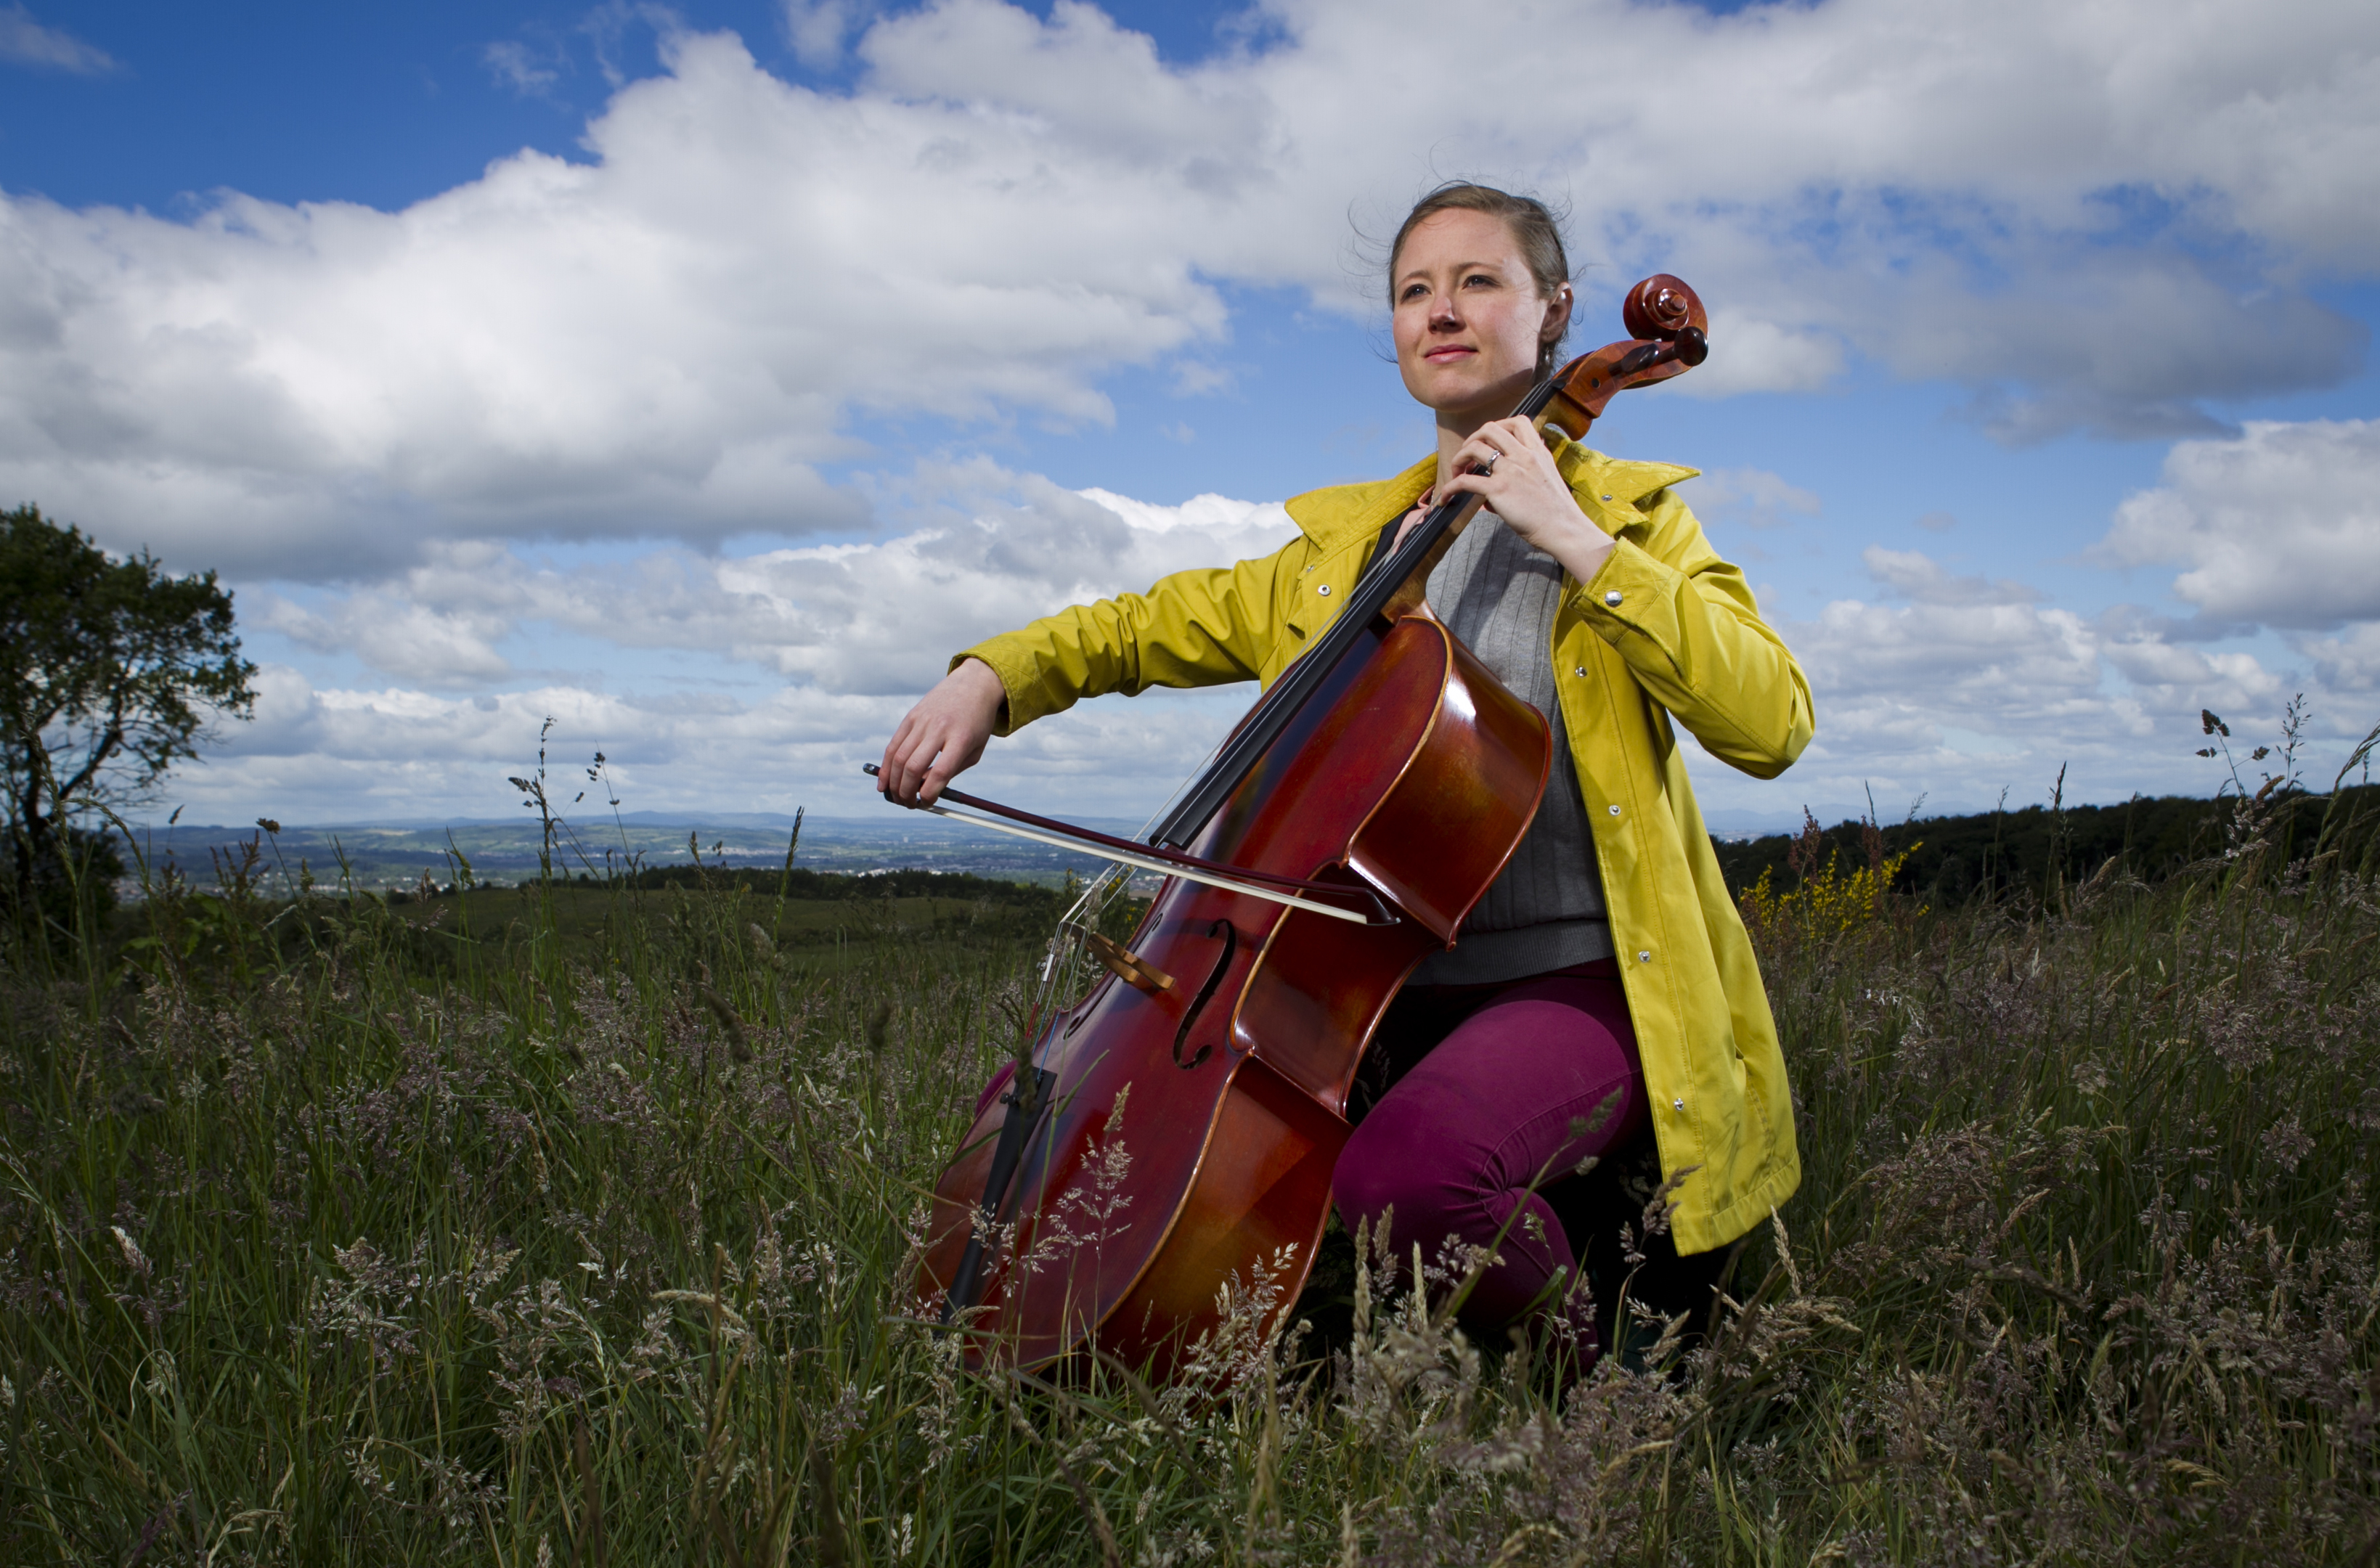 Cellist Heidi van der Swaagh on the Cathkin Braes last week (Andrew Cawley / DC Thomson)